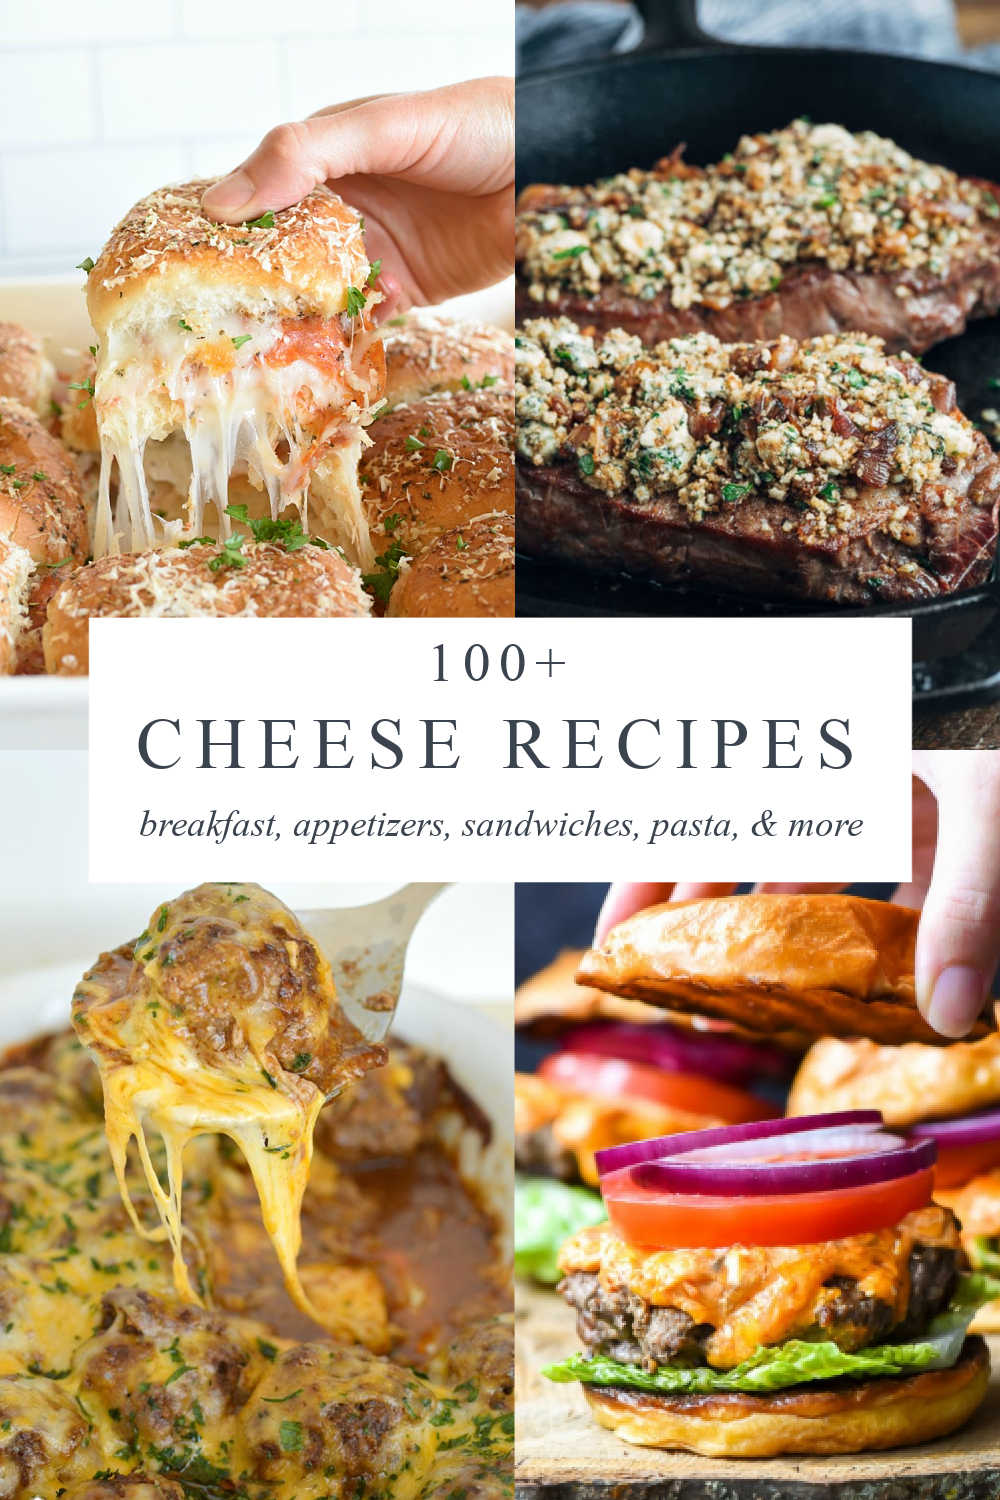 four images of recipes using cheese plus a text overlay